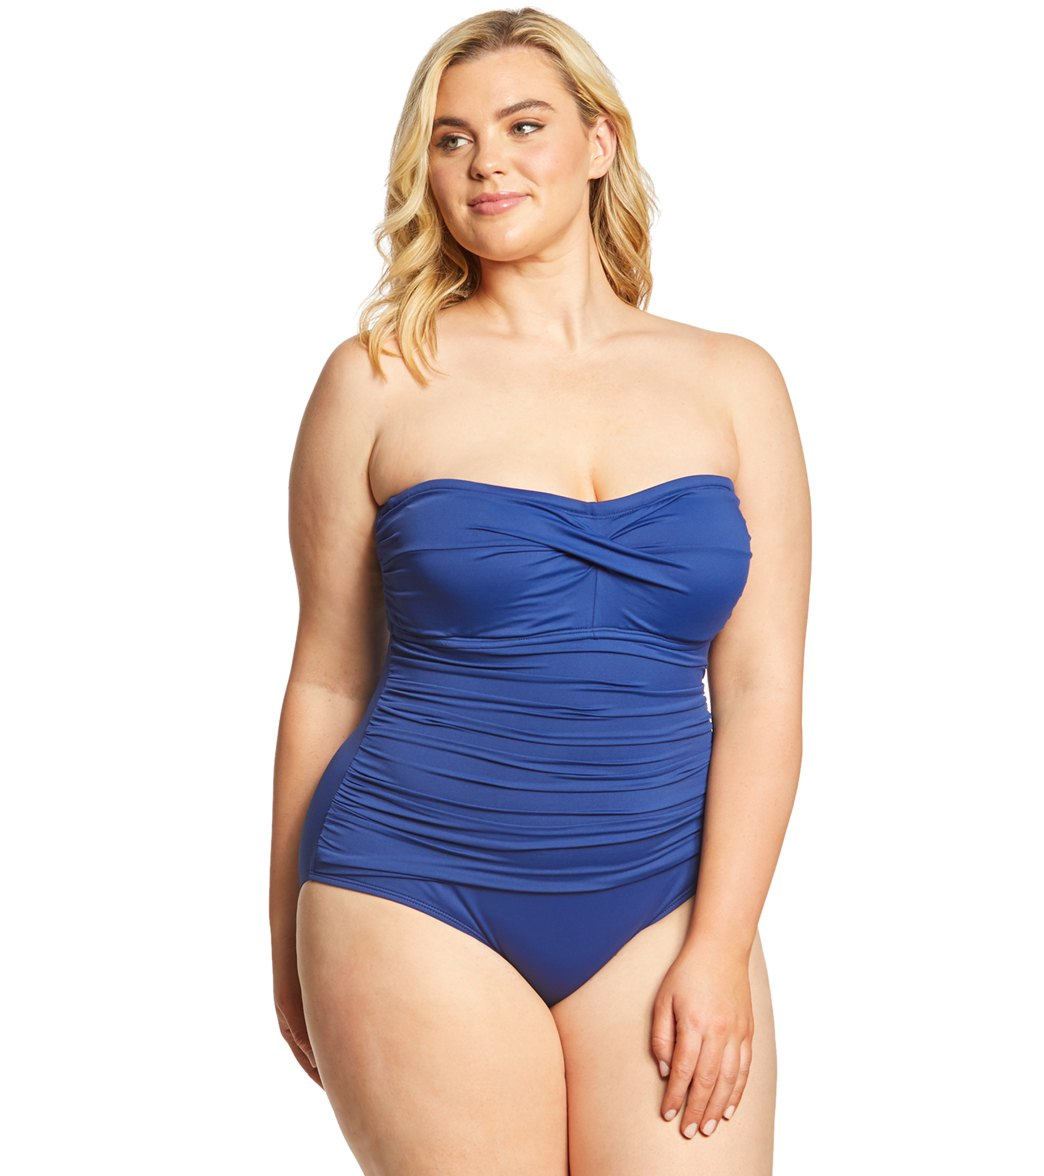 bf989fad01 Lauren Ralph Lauren Plus Size Beach Club Solid Twist Bandeau One Piece Swimsuit  at SwimOutlet.com - Free Shipping